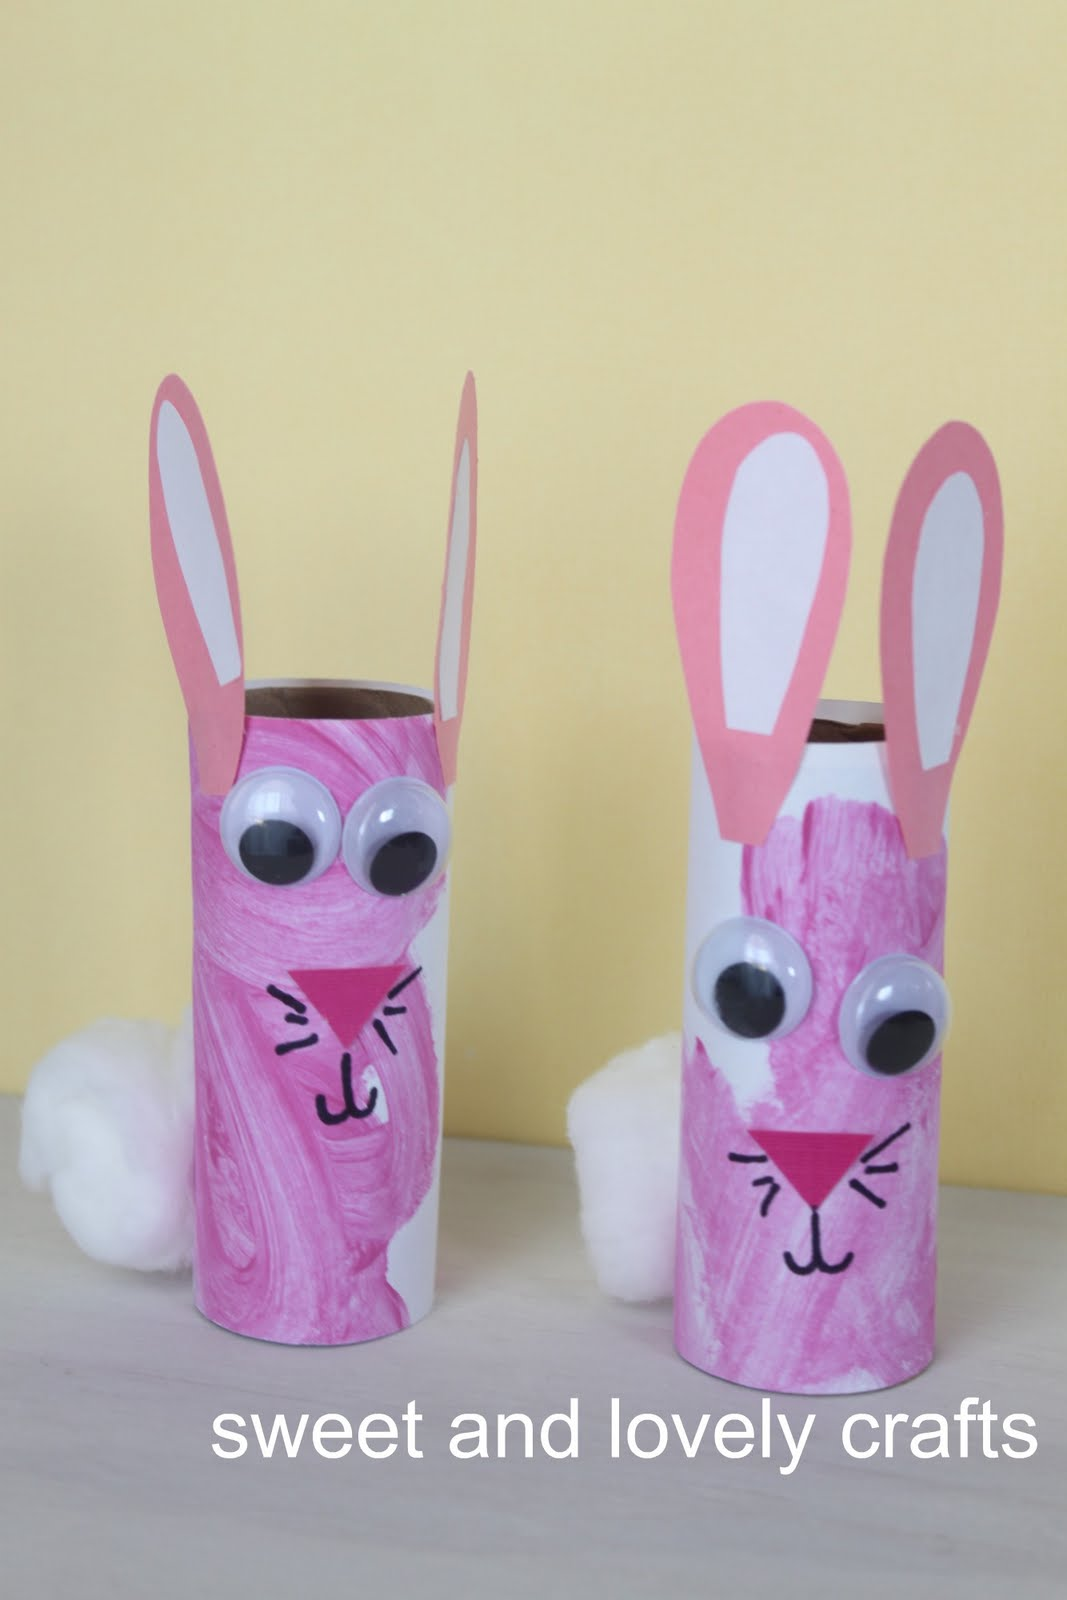 sweet and lovely crafts: toilet paper roll bunnies